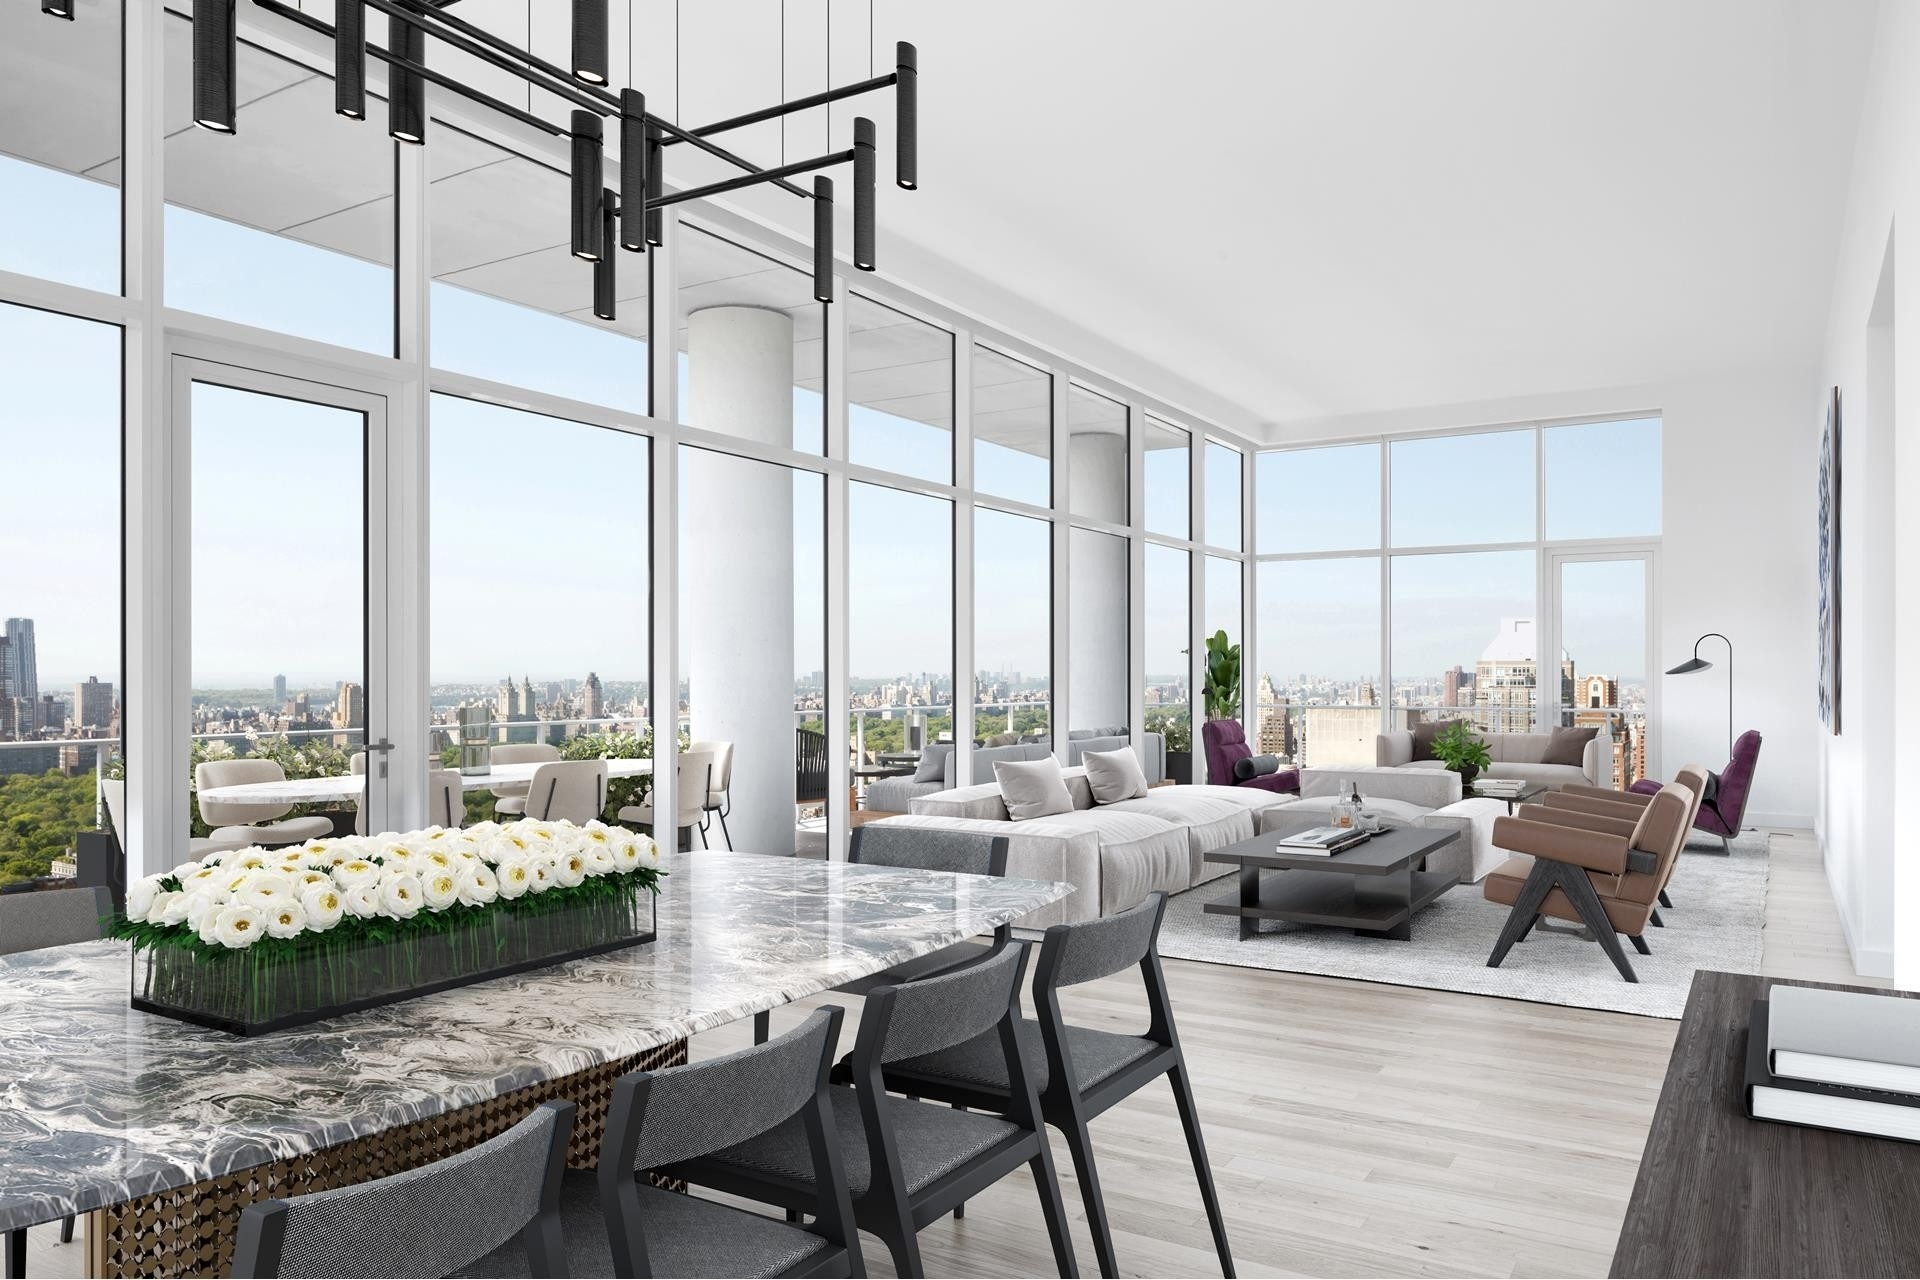 3. Condominiums for Sale at 200 East 59th St, PH33 Midtown Manhattan, New York, NY 10022